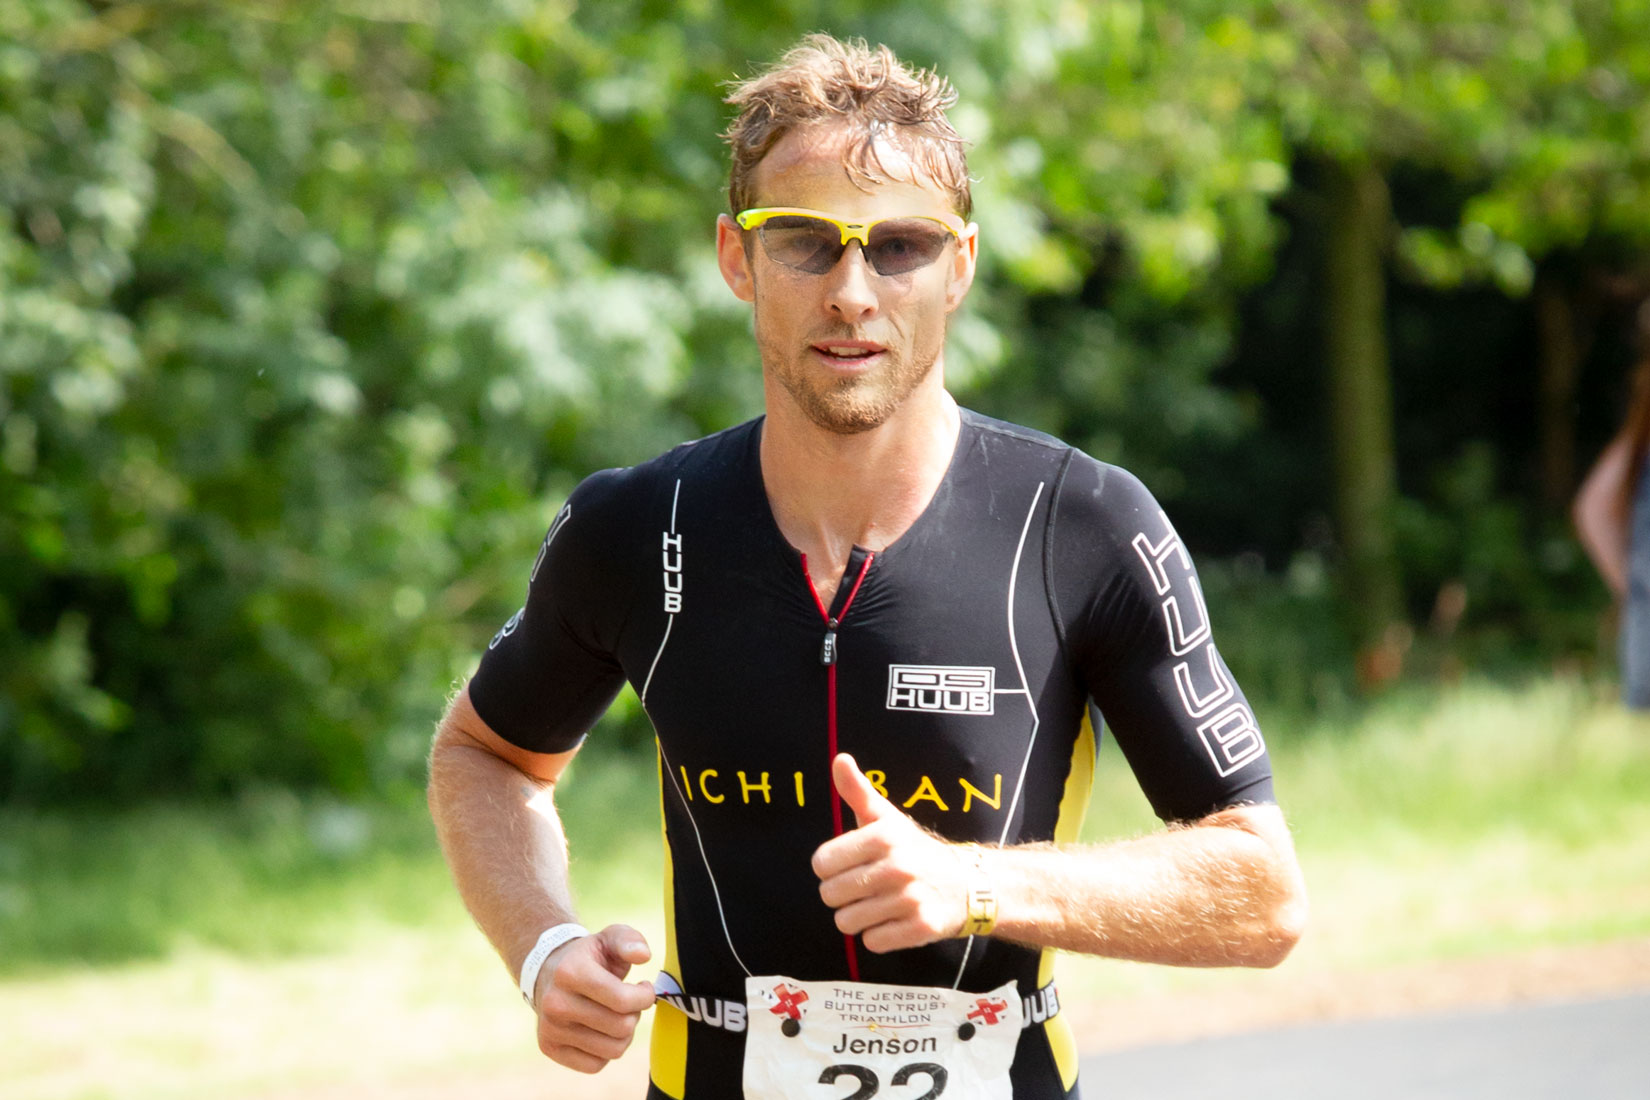 Jenson button with thumb up running in Derby Triathlon